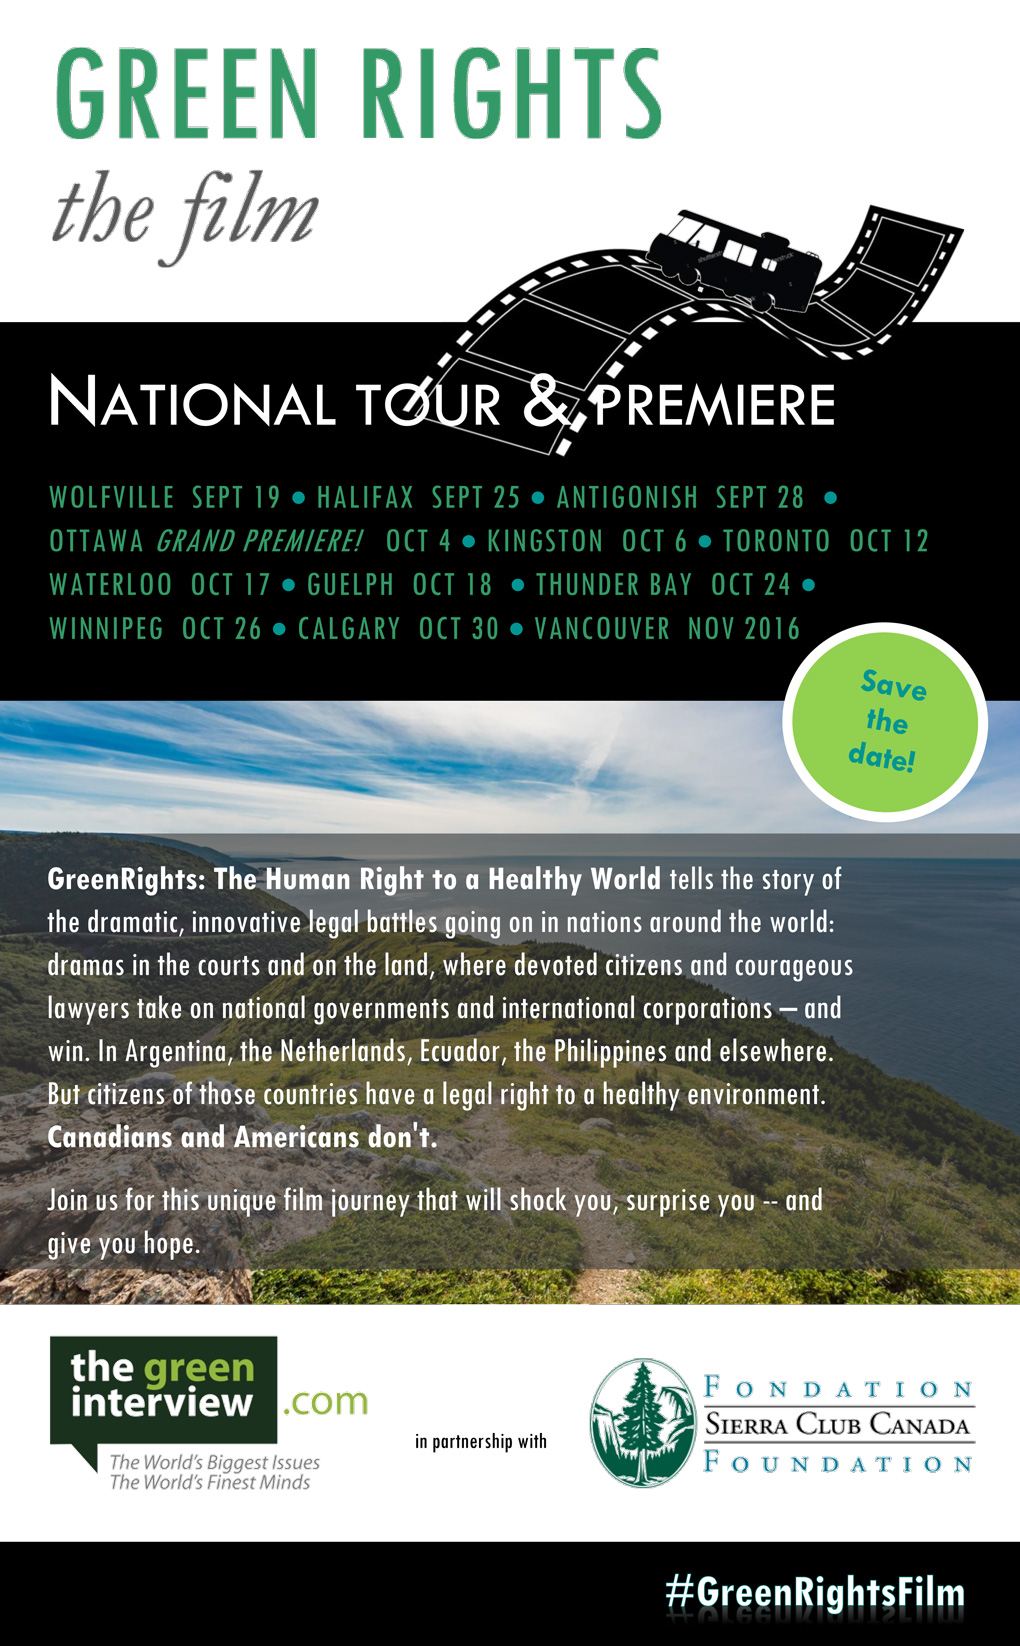 Green Rights film tour poster